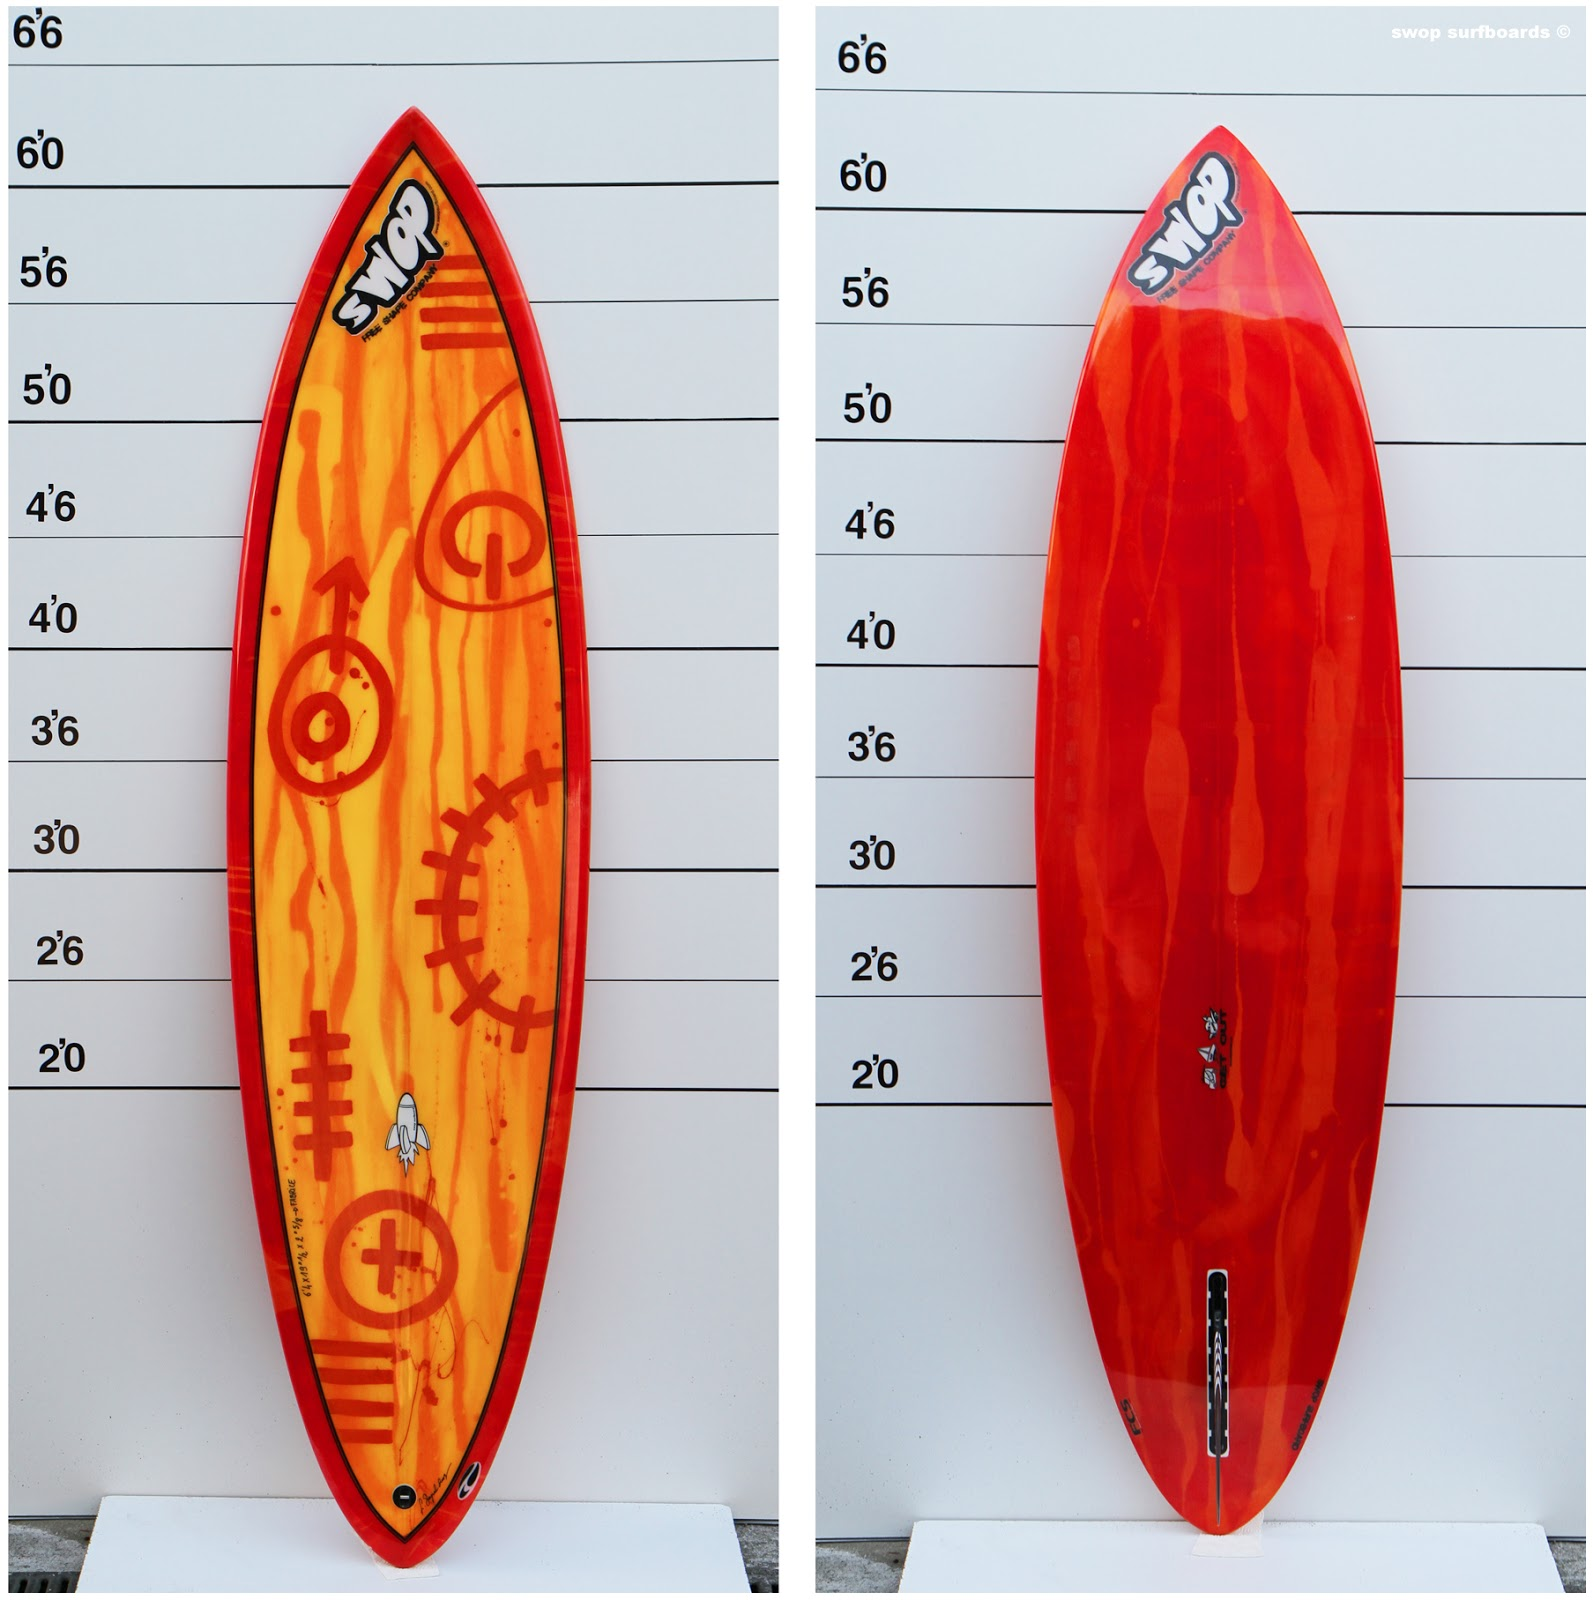 swop surfboards yellow and red classic single. Black Bedroom Furniture Sets. Home Design Ideas